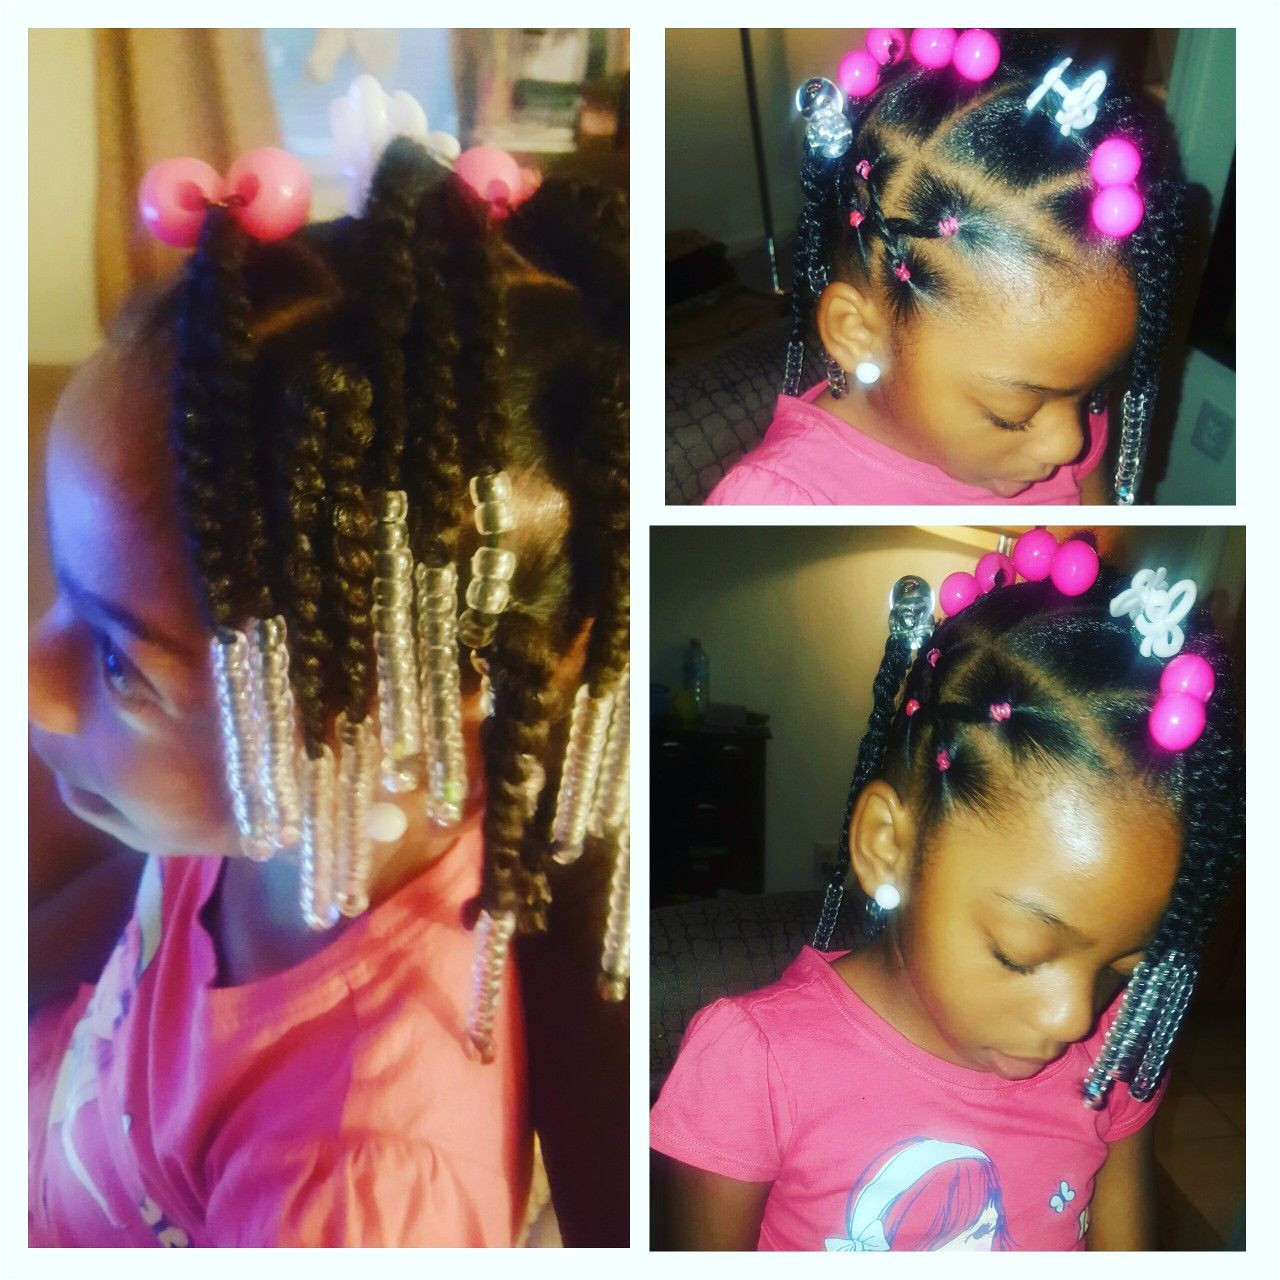 Hairstyles for Little Black Girls- Ponytails Simple Hair Styles for Little Black Girls Braids Beads and